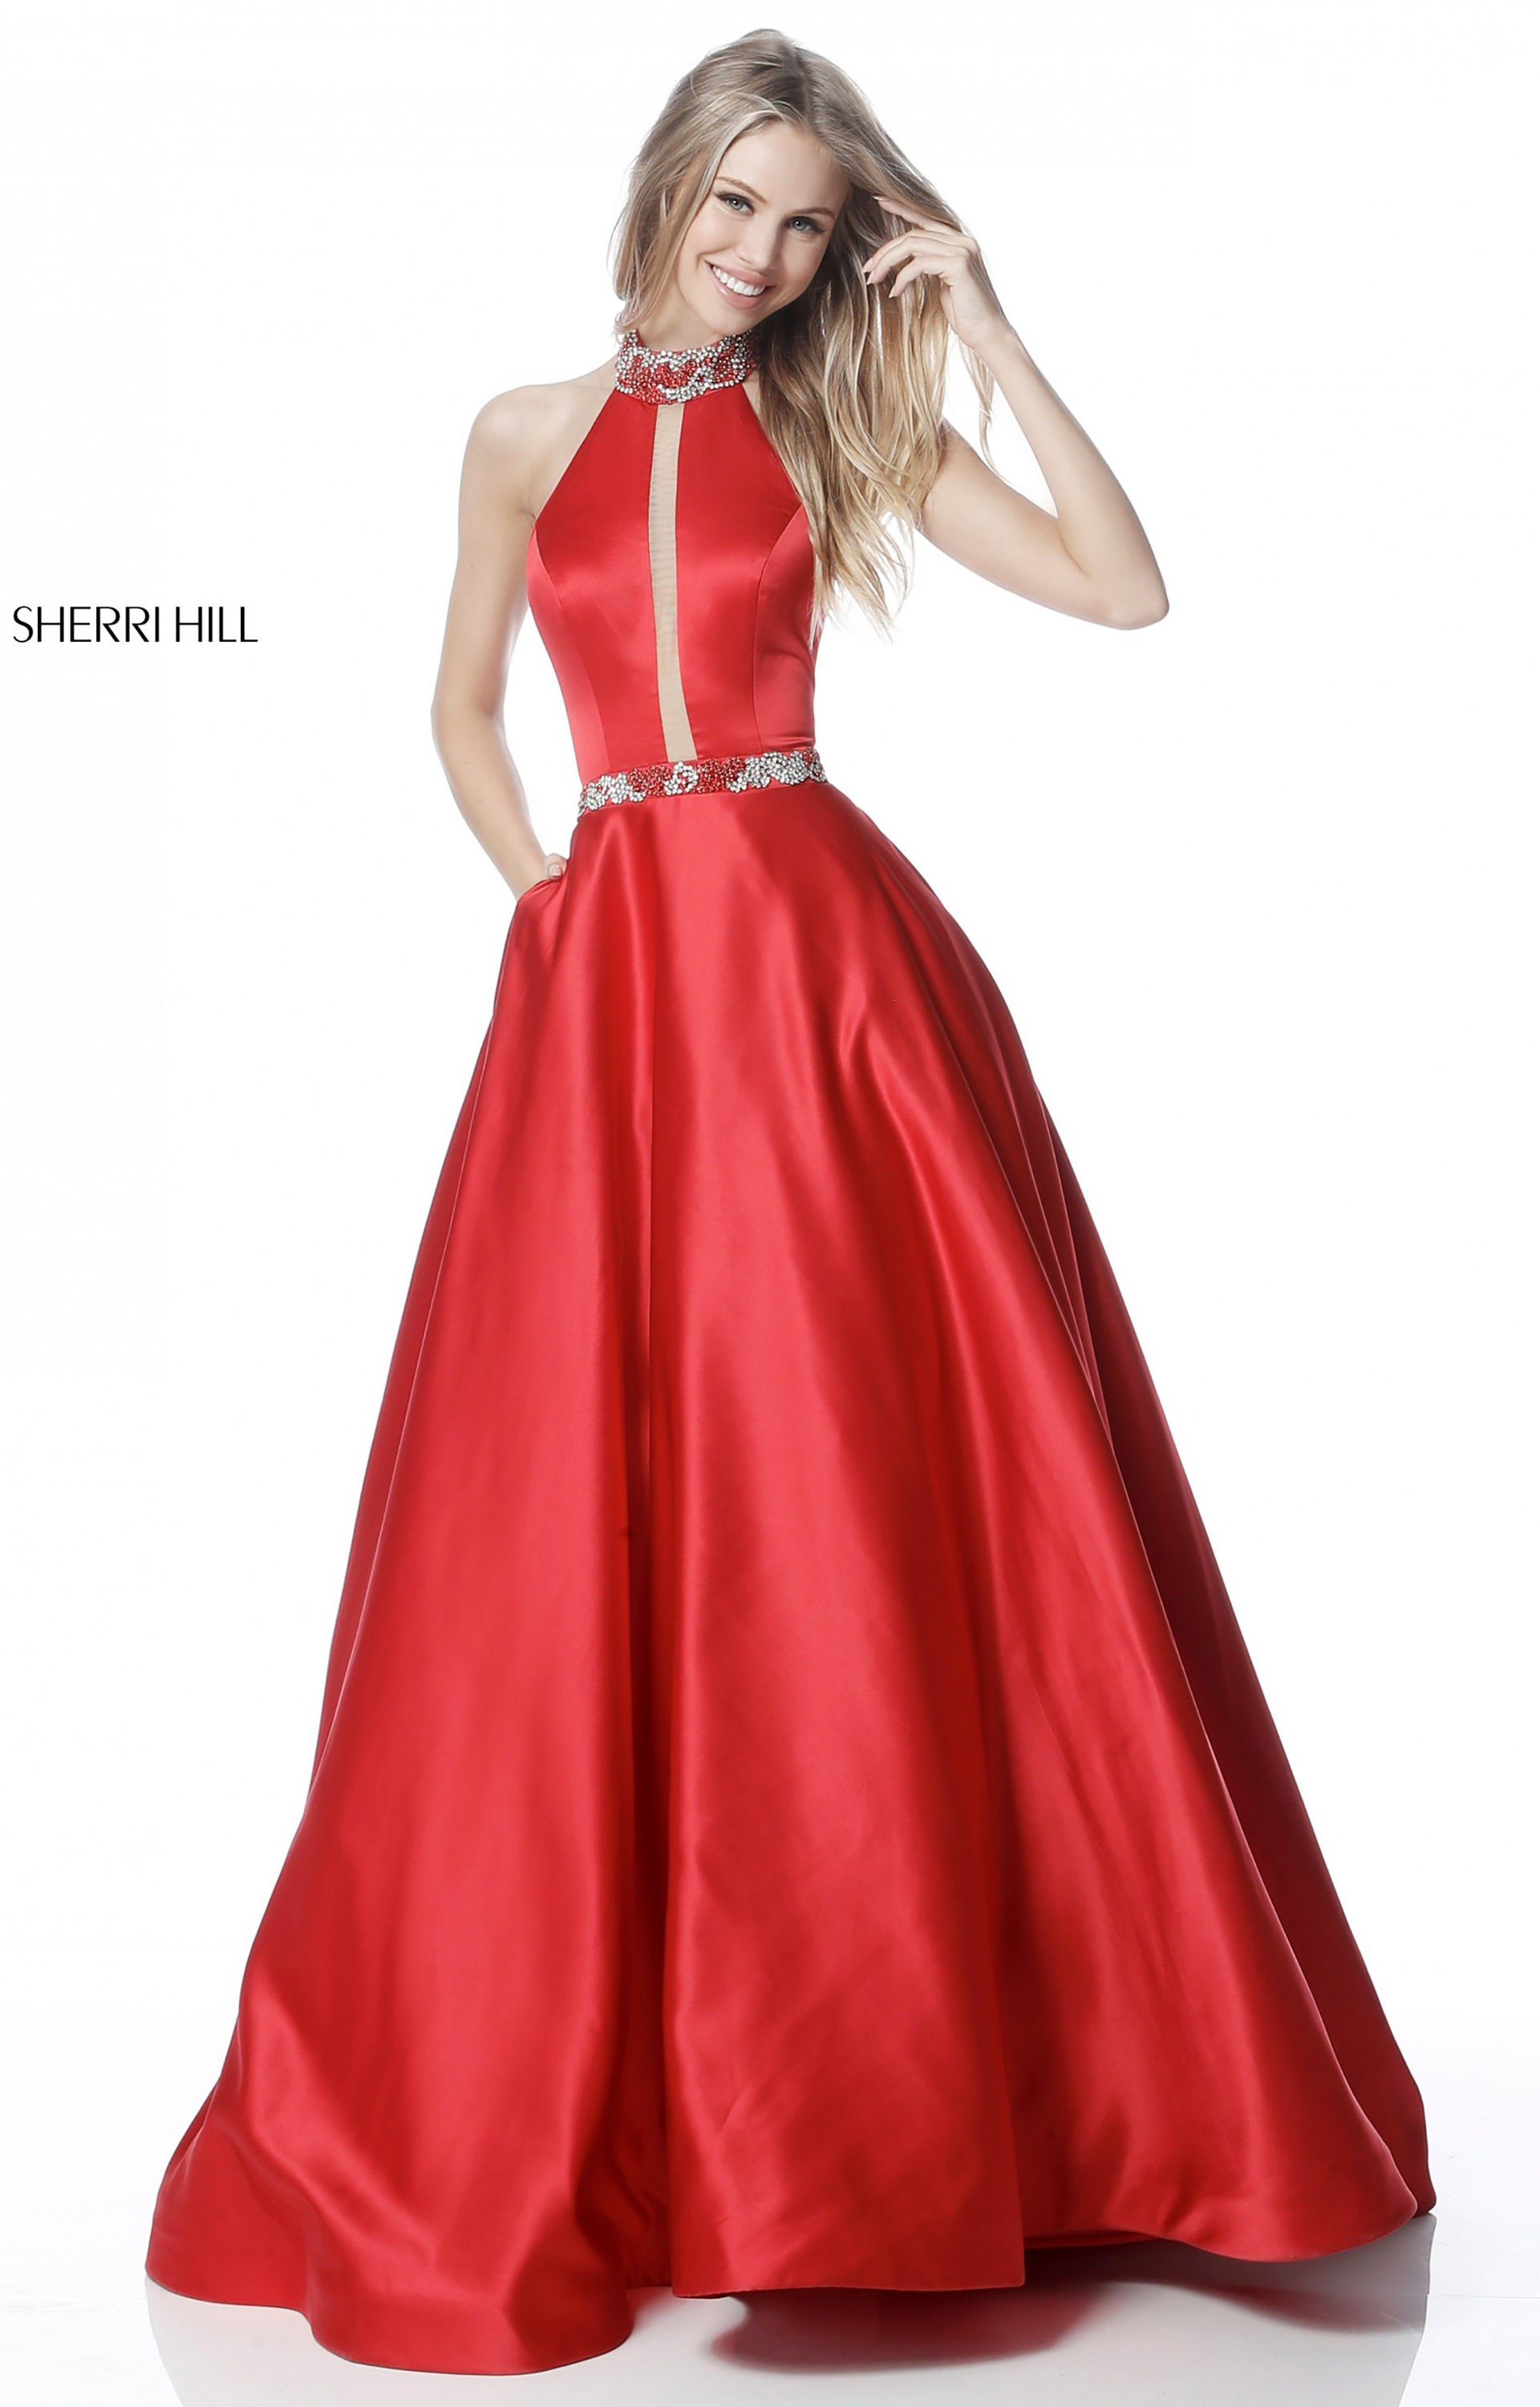 Sherri Hill 51589 Halter Satin Ball Gown Sequined Collar